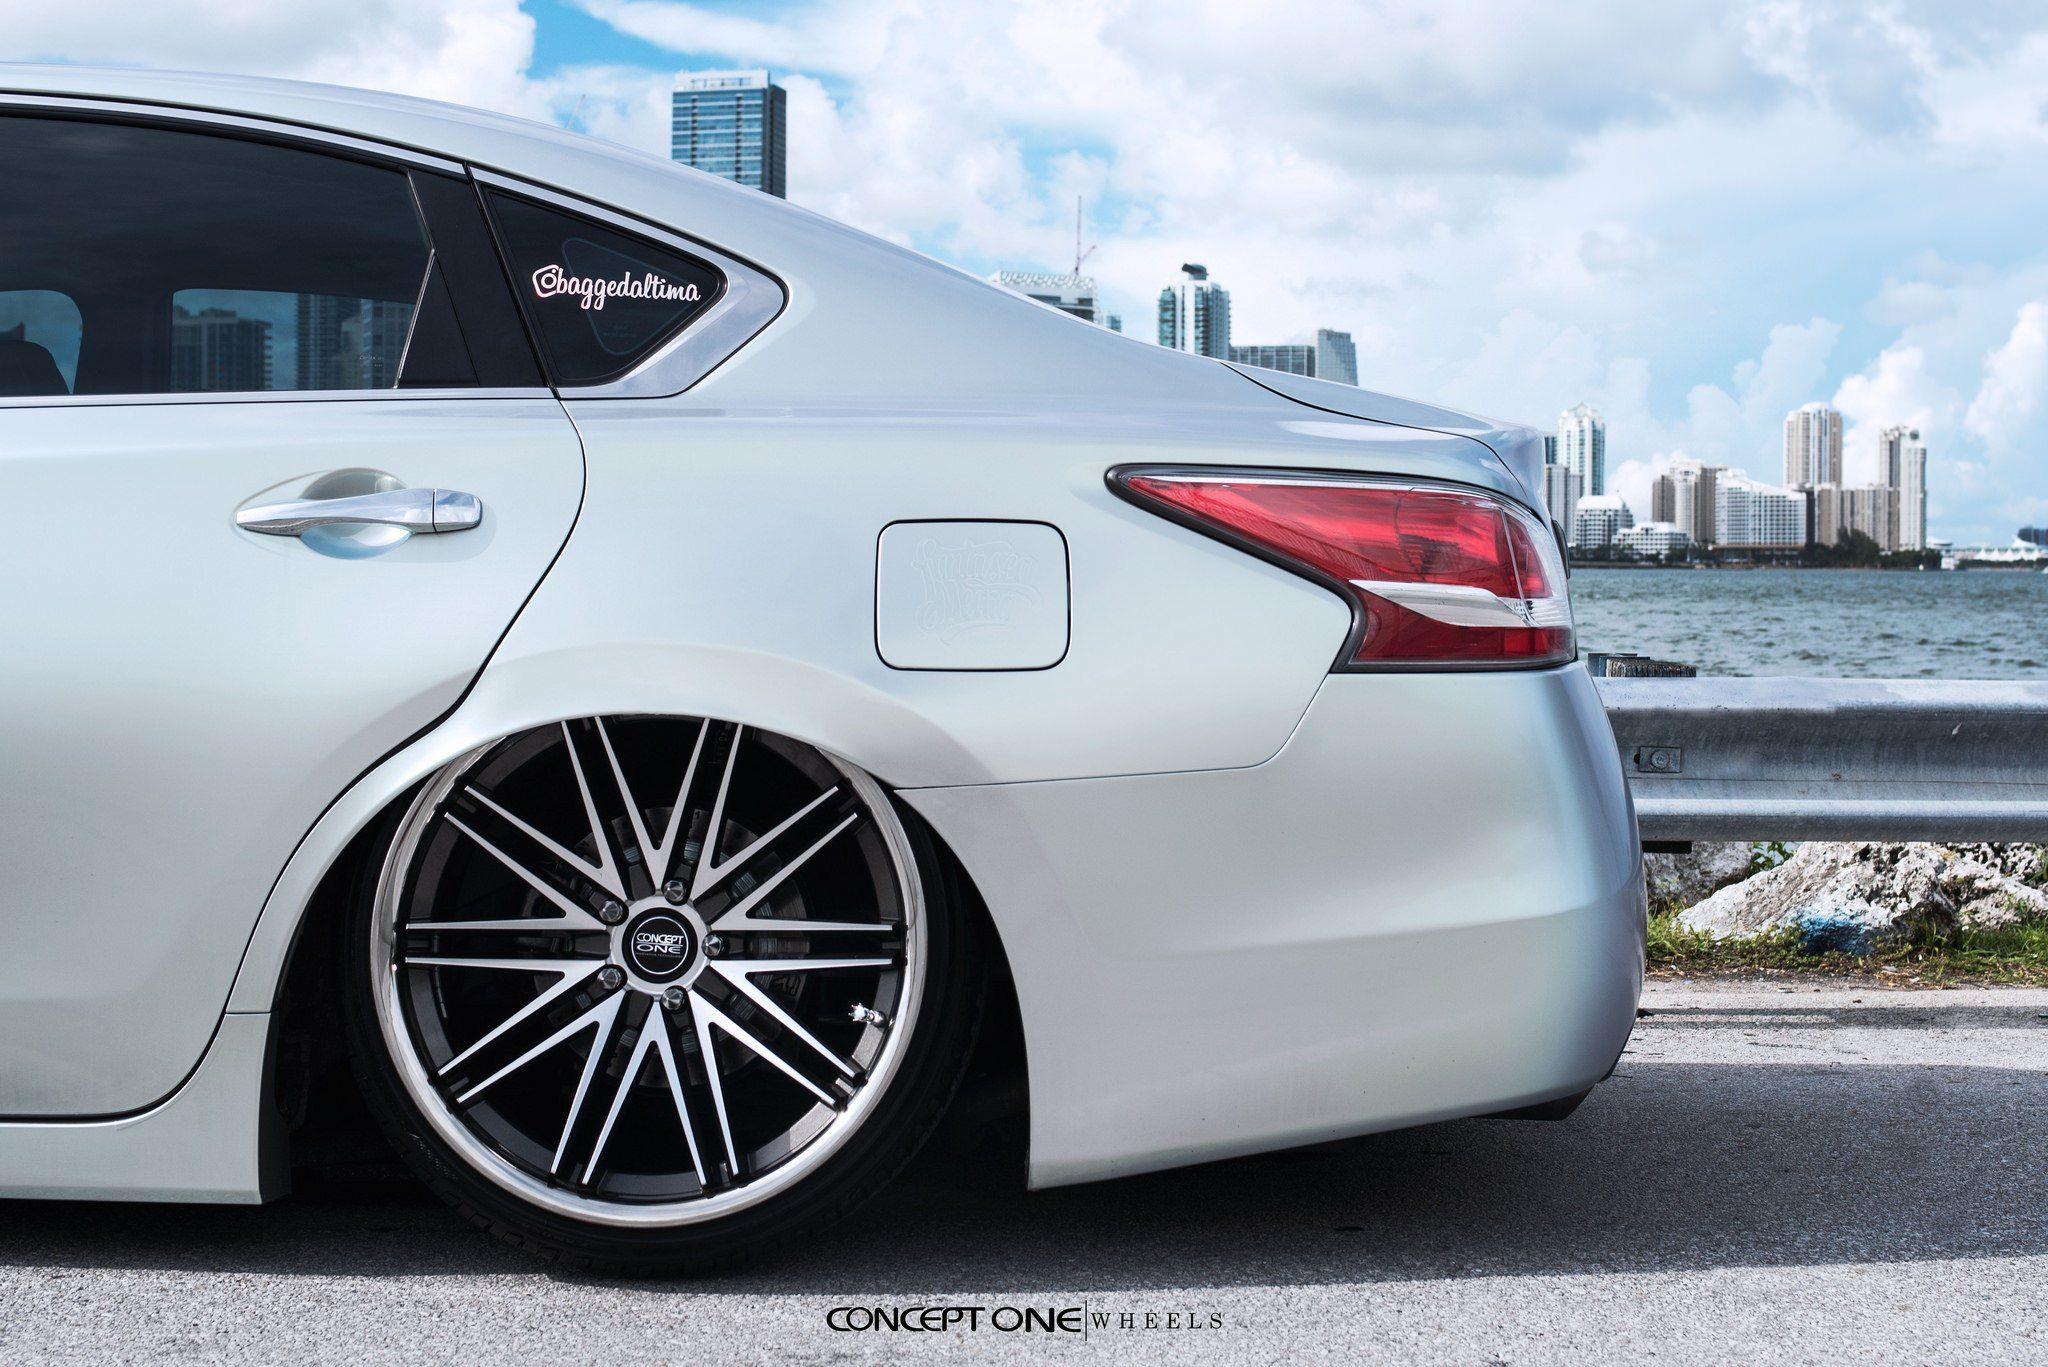 White Nissan Altima With Polished Concept One Rims Photo By Concept One Nissan Altima Altima Nissan